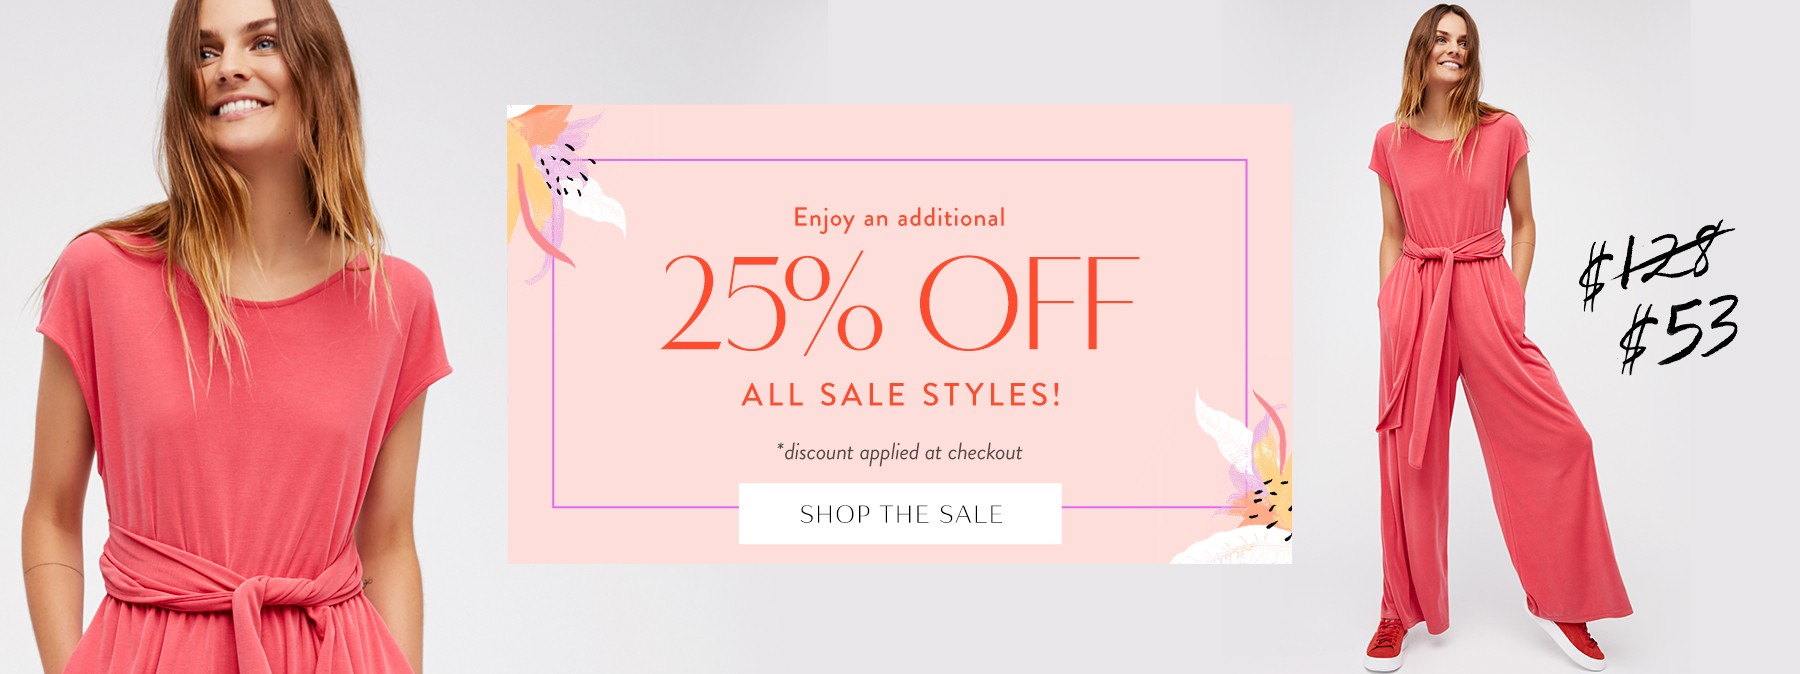 25% Off All Sale Styles at Free People